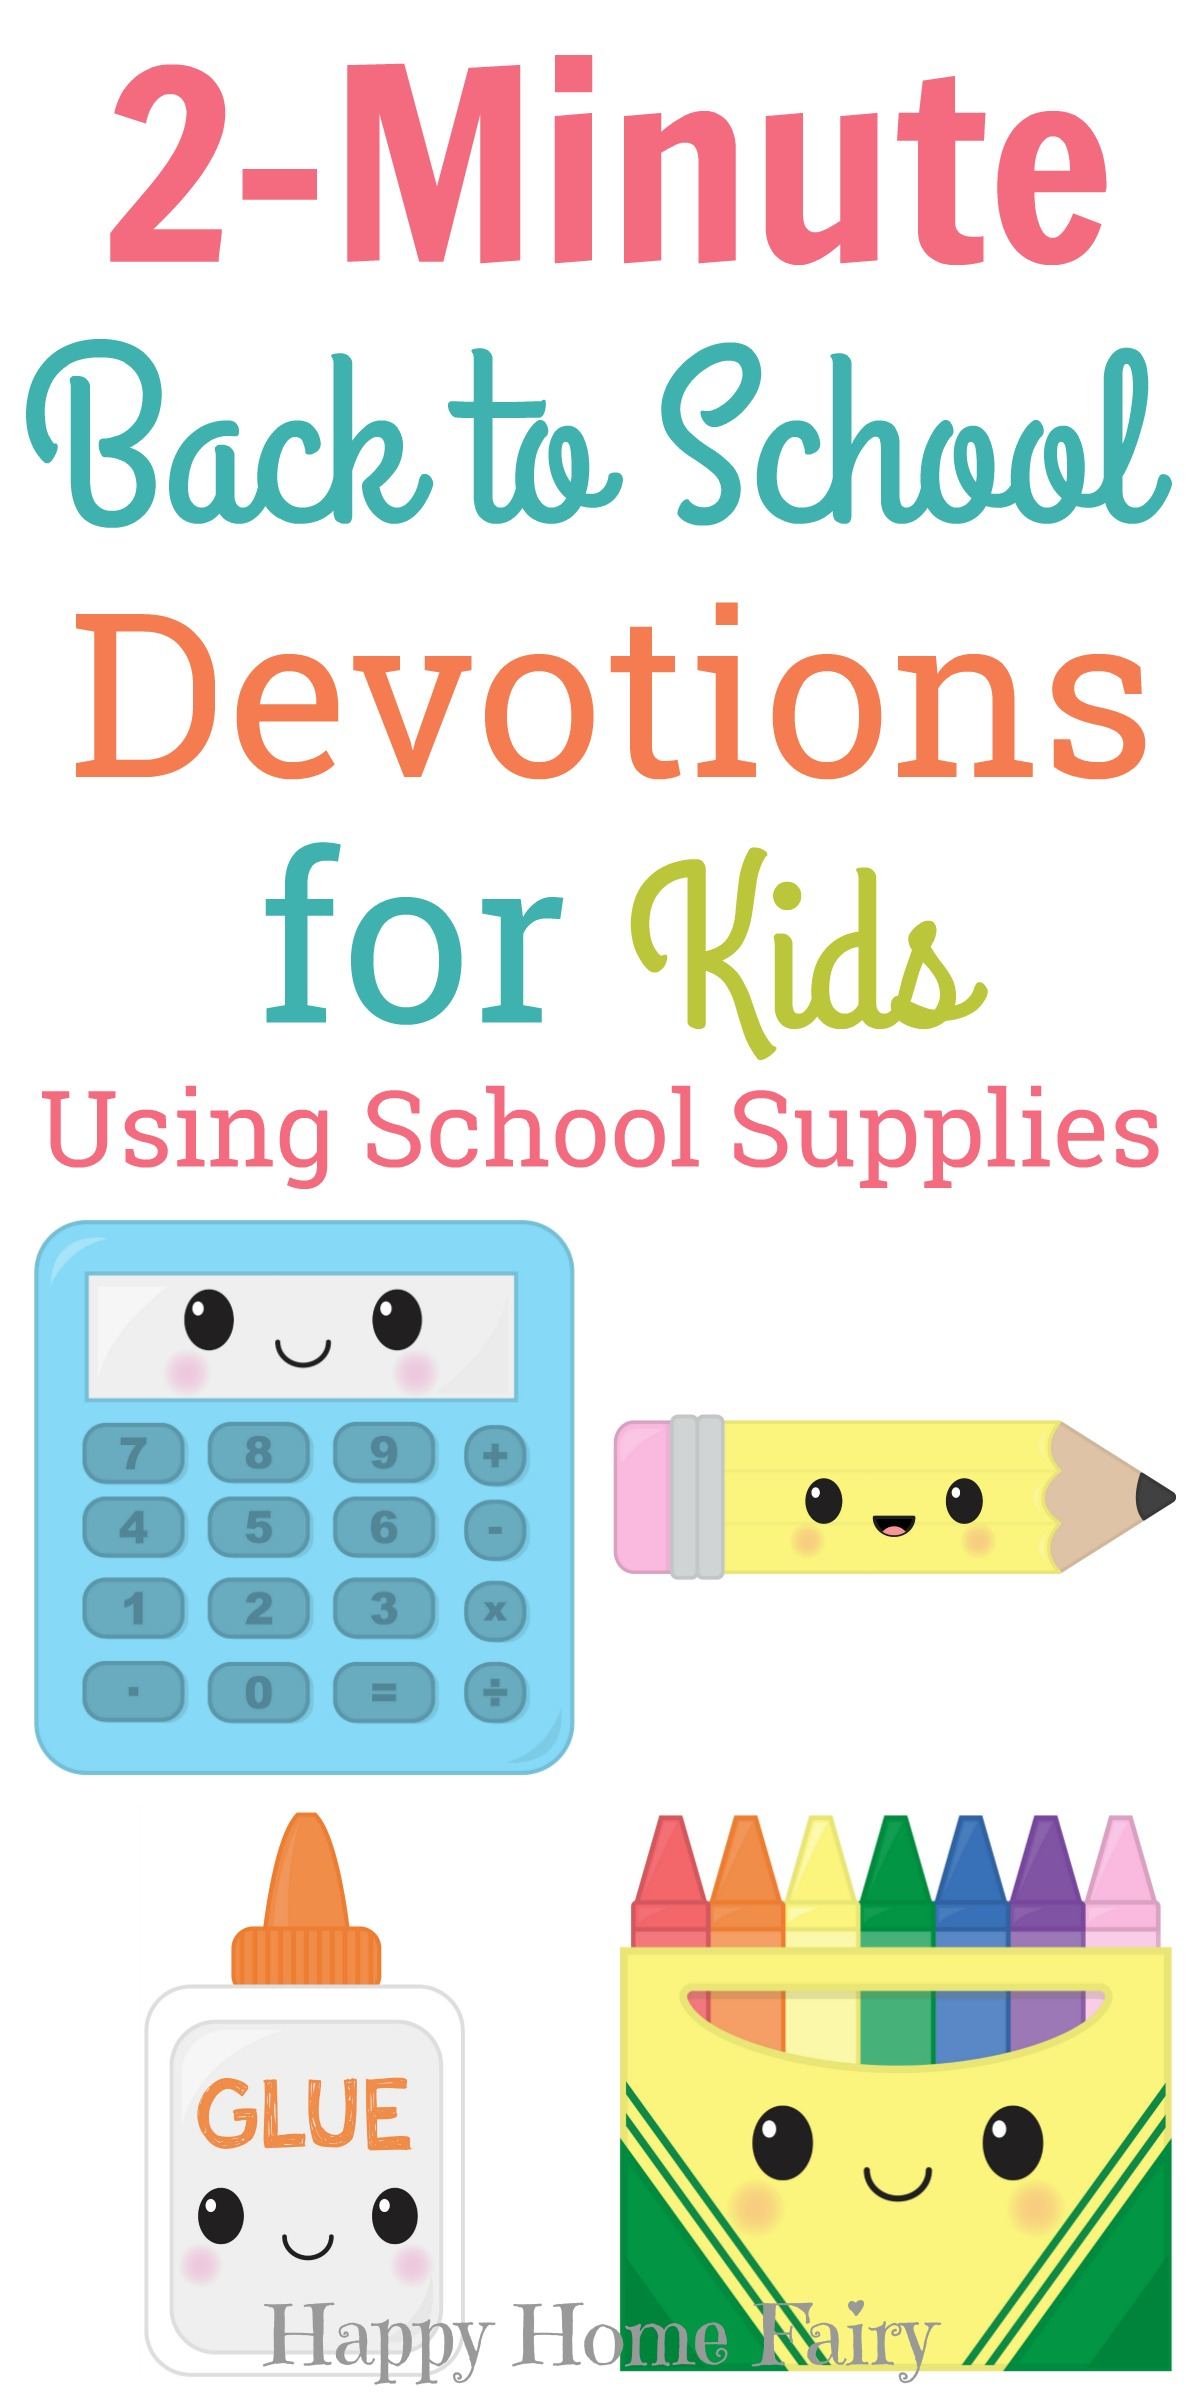 2-Minute Back to School Devotions for Kids